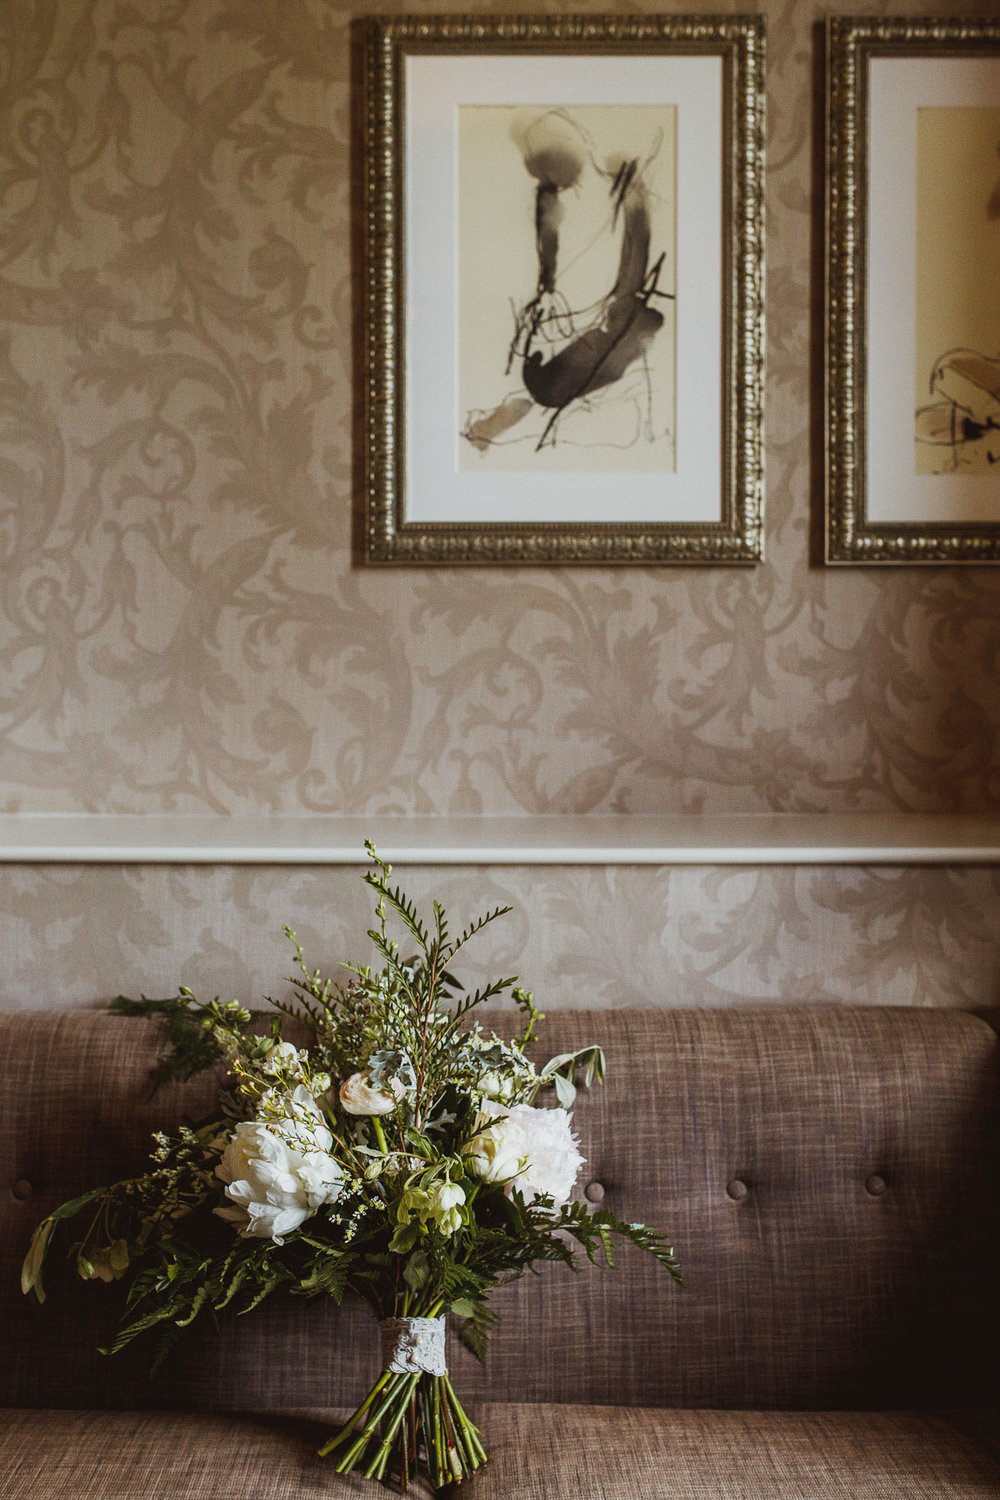 allerton_castle_wedding_photographer-7.jpg